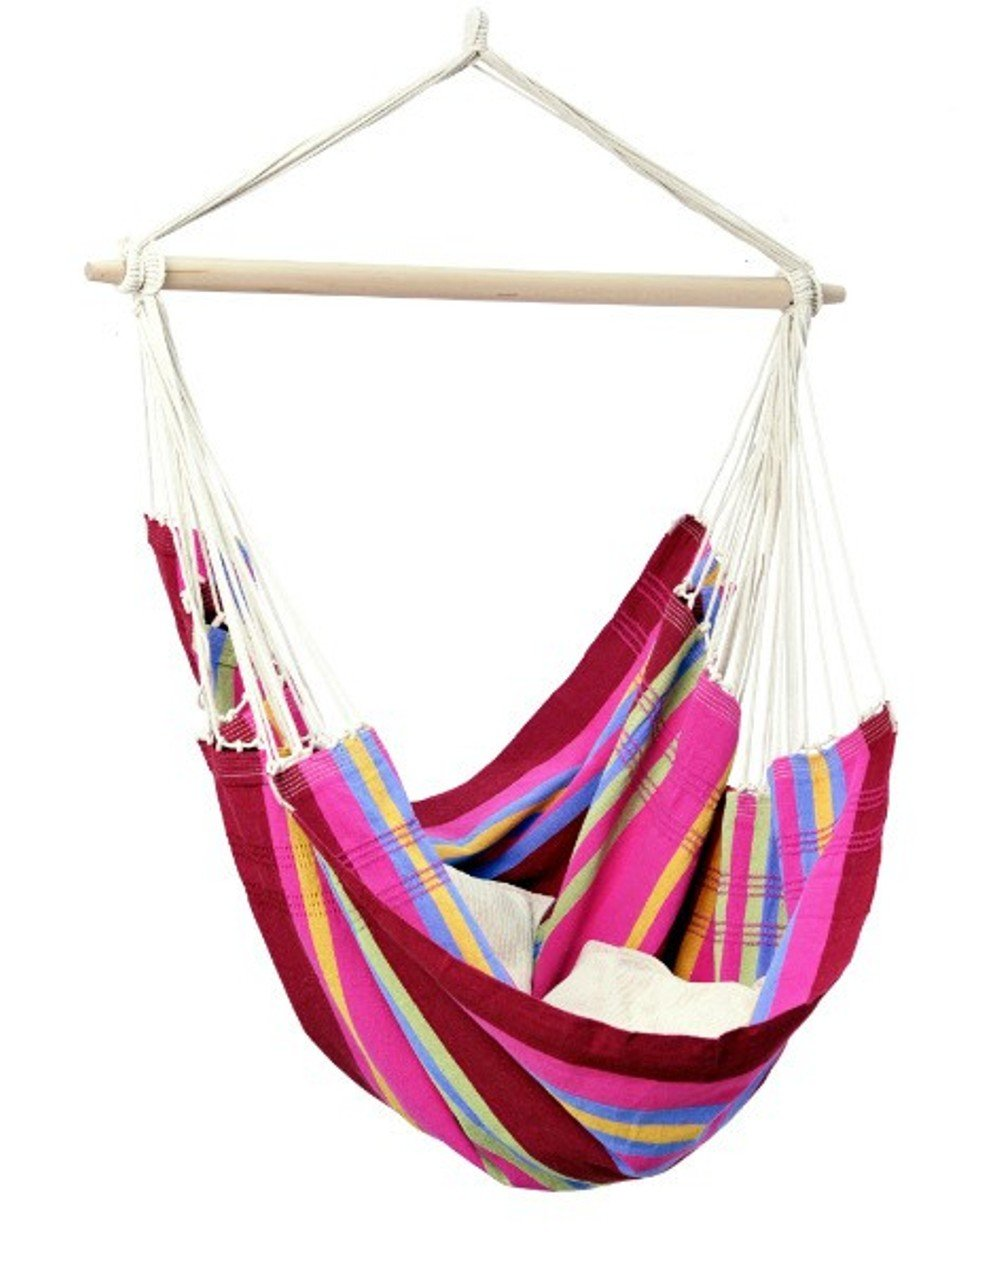 Brazil Hanging Hammock Chair, Indoors and Outdoors, Recycled Cotton Polyester Blend Canvas, Handwoven, Sorbet, 68 L X 42 W, Holds up to 240lbs